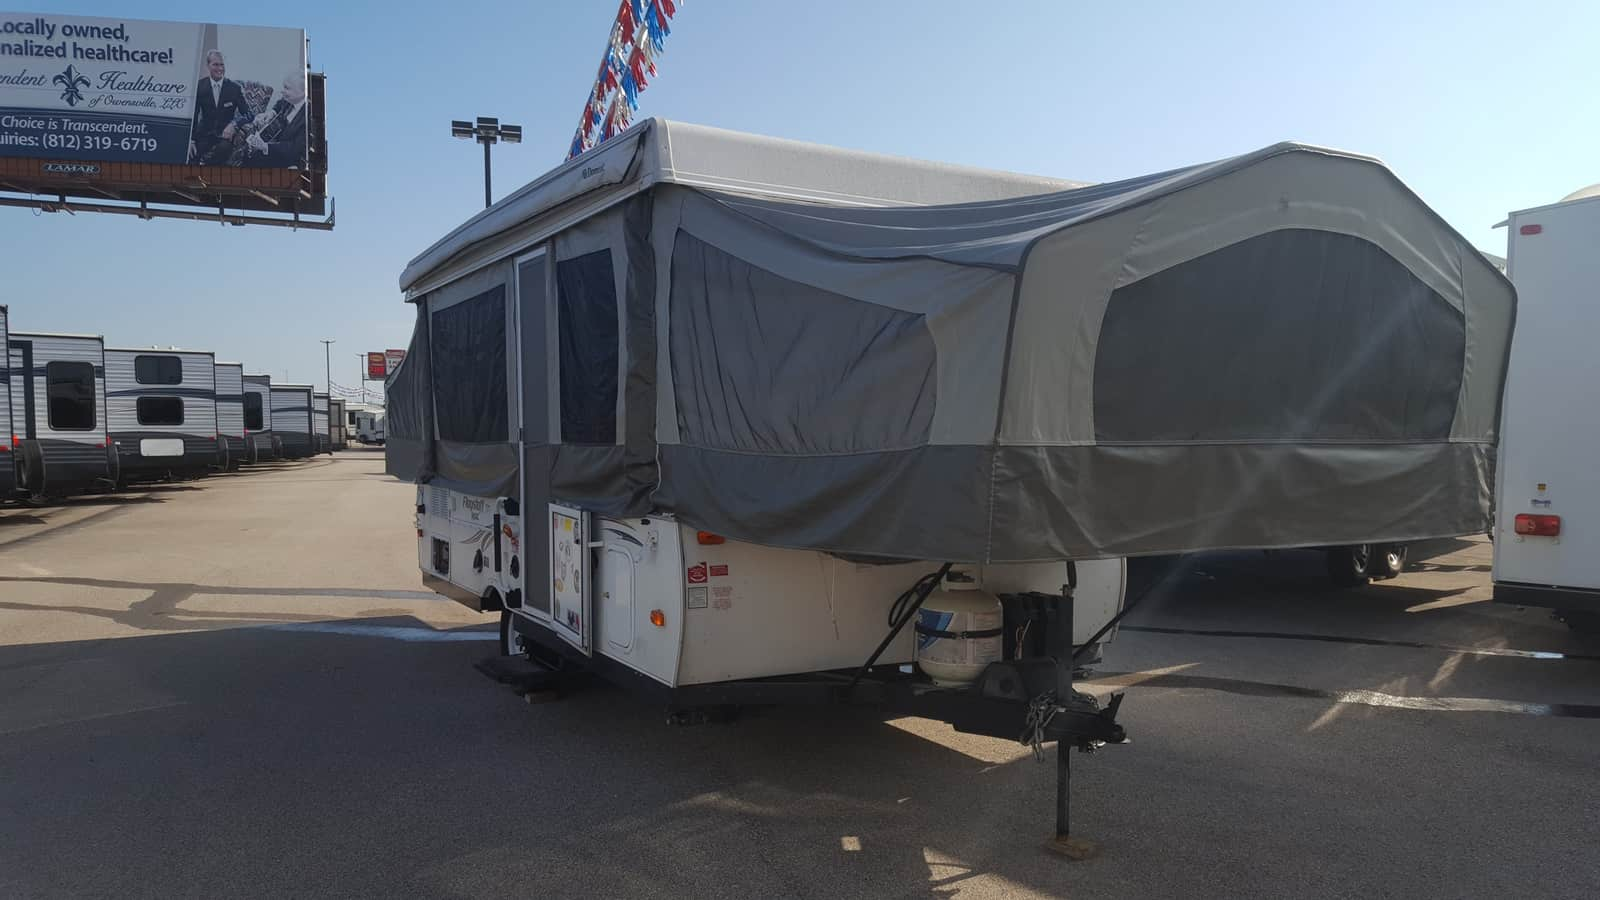 USED 2015 Forest River FLAGSTAFF 246D-MAC - American RV